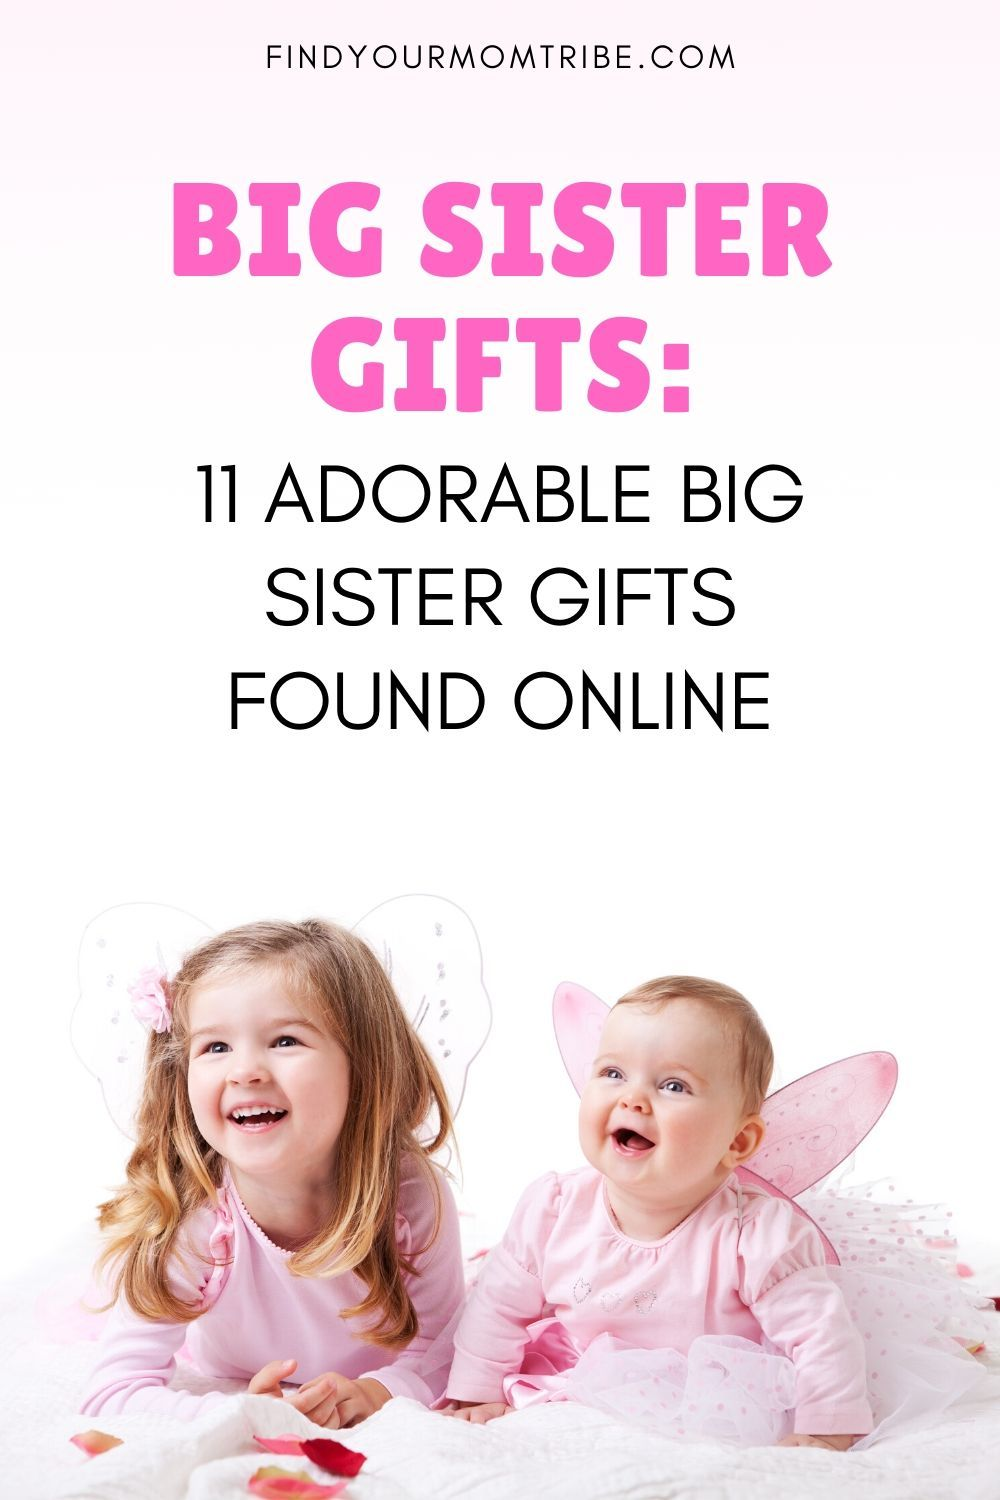 Big sister gifts 11 adorable big sister gifts found